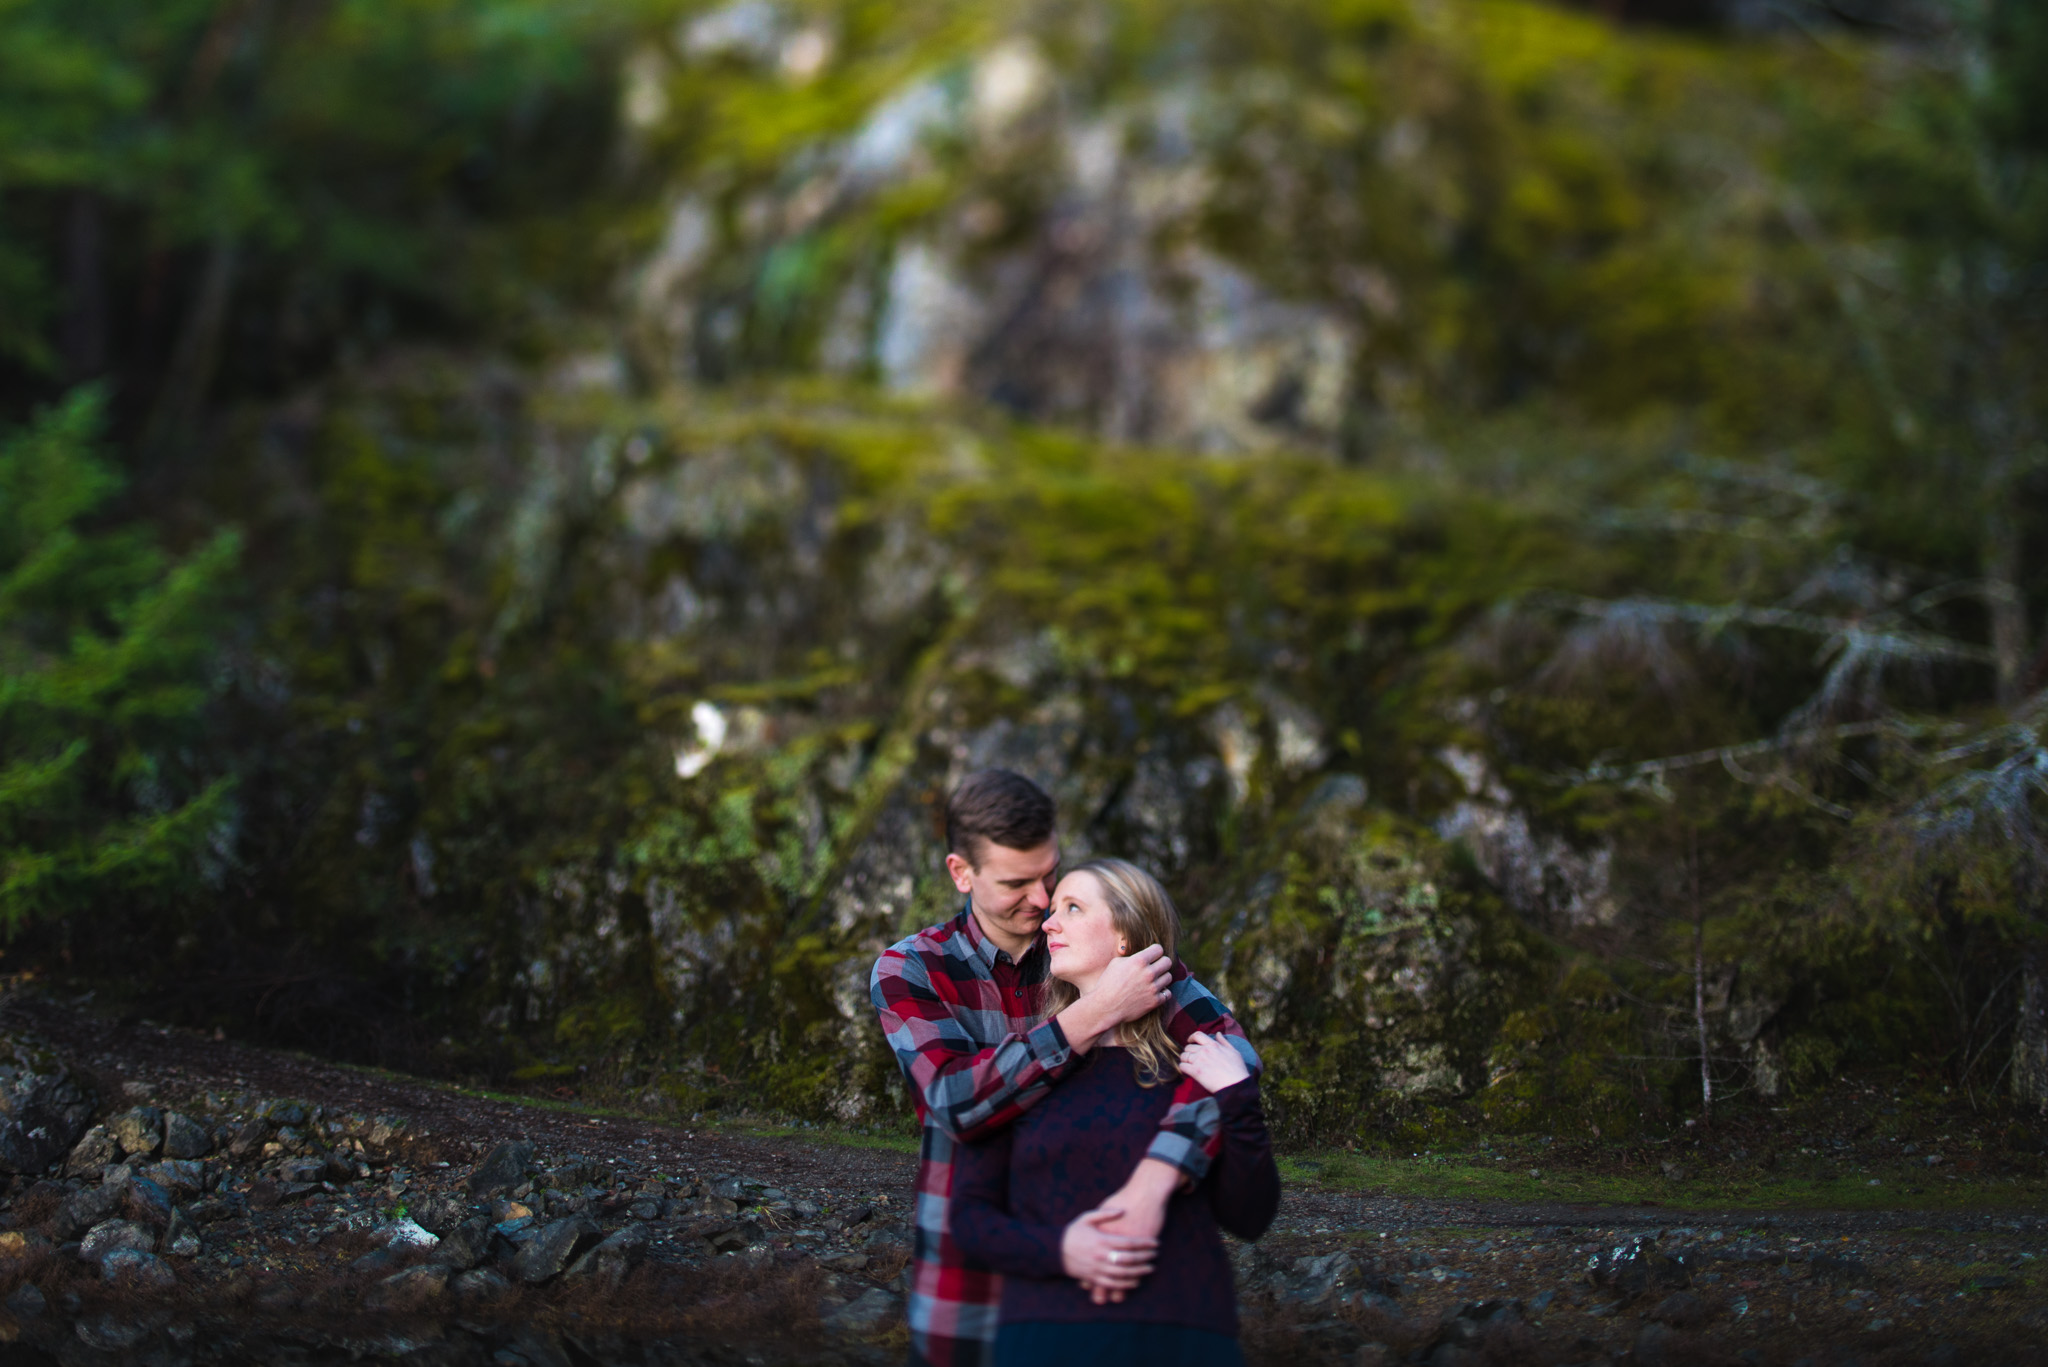 victoria-wedding-photographers-mckenzie-bight-engagement-todd-gowland-park-17.jpg